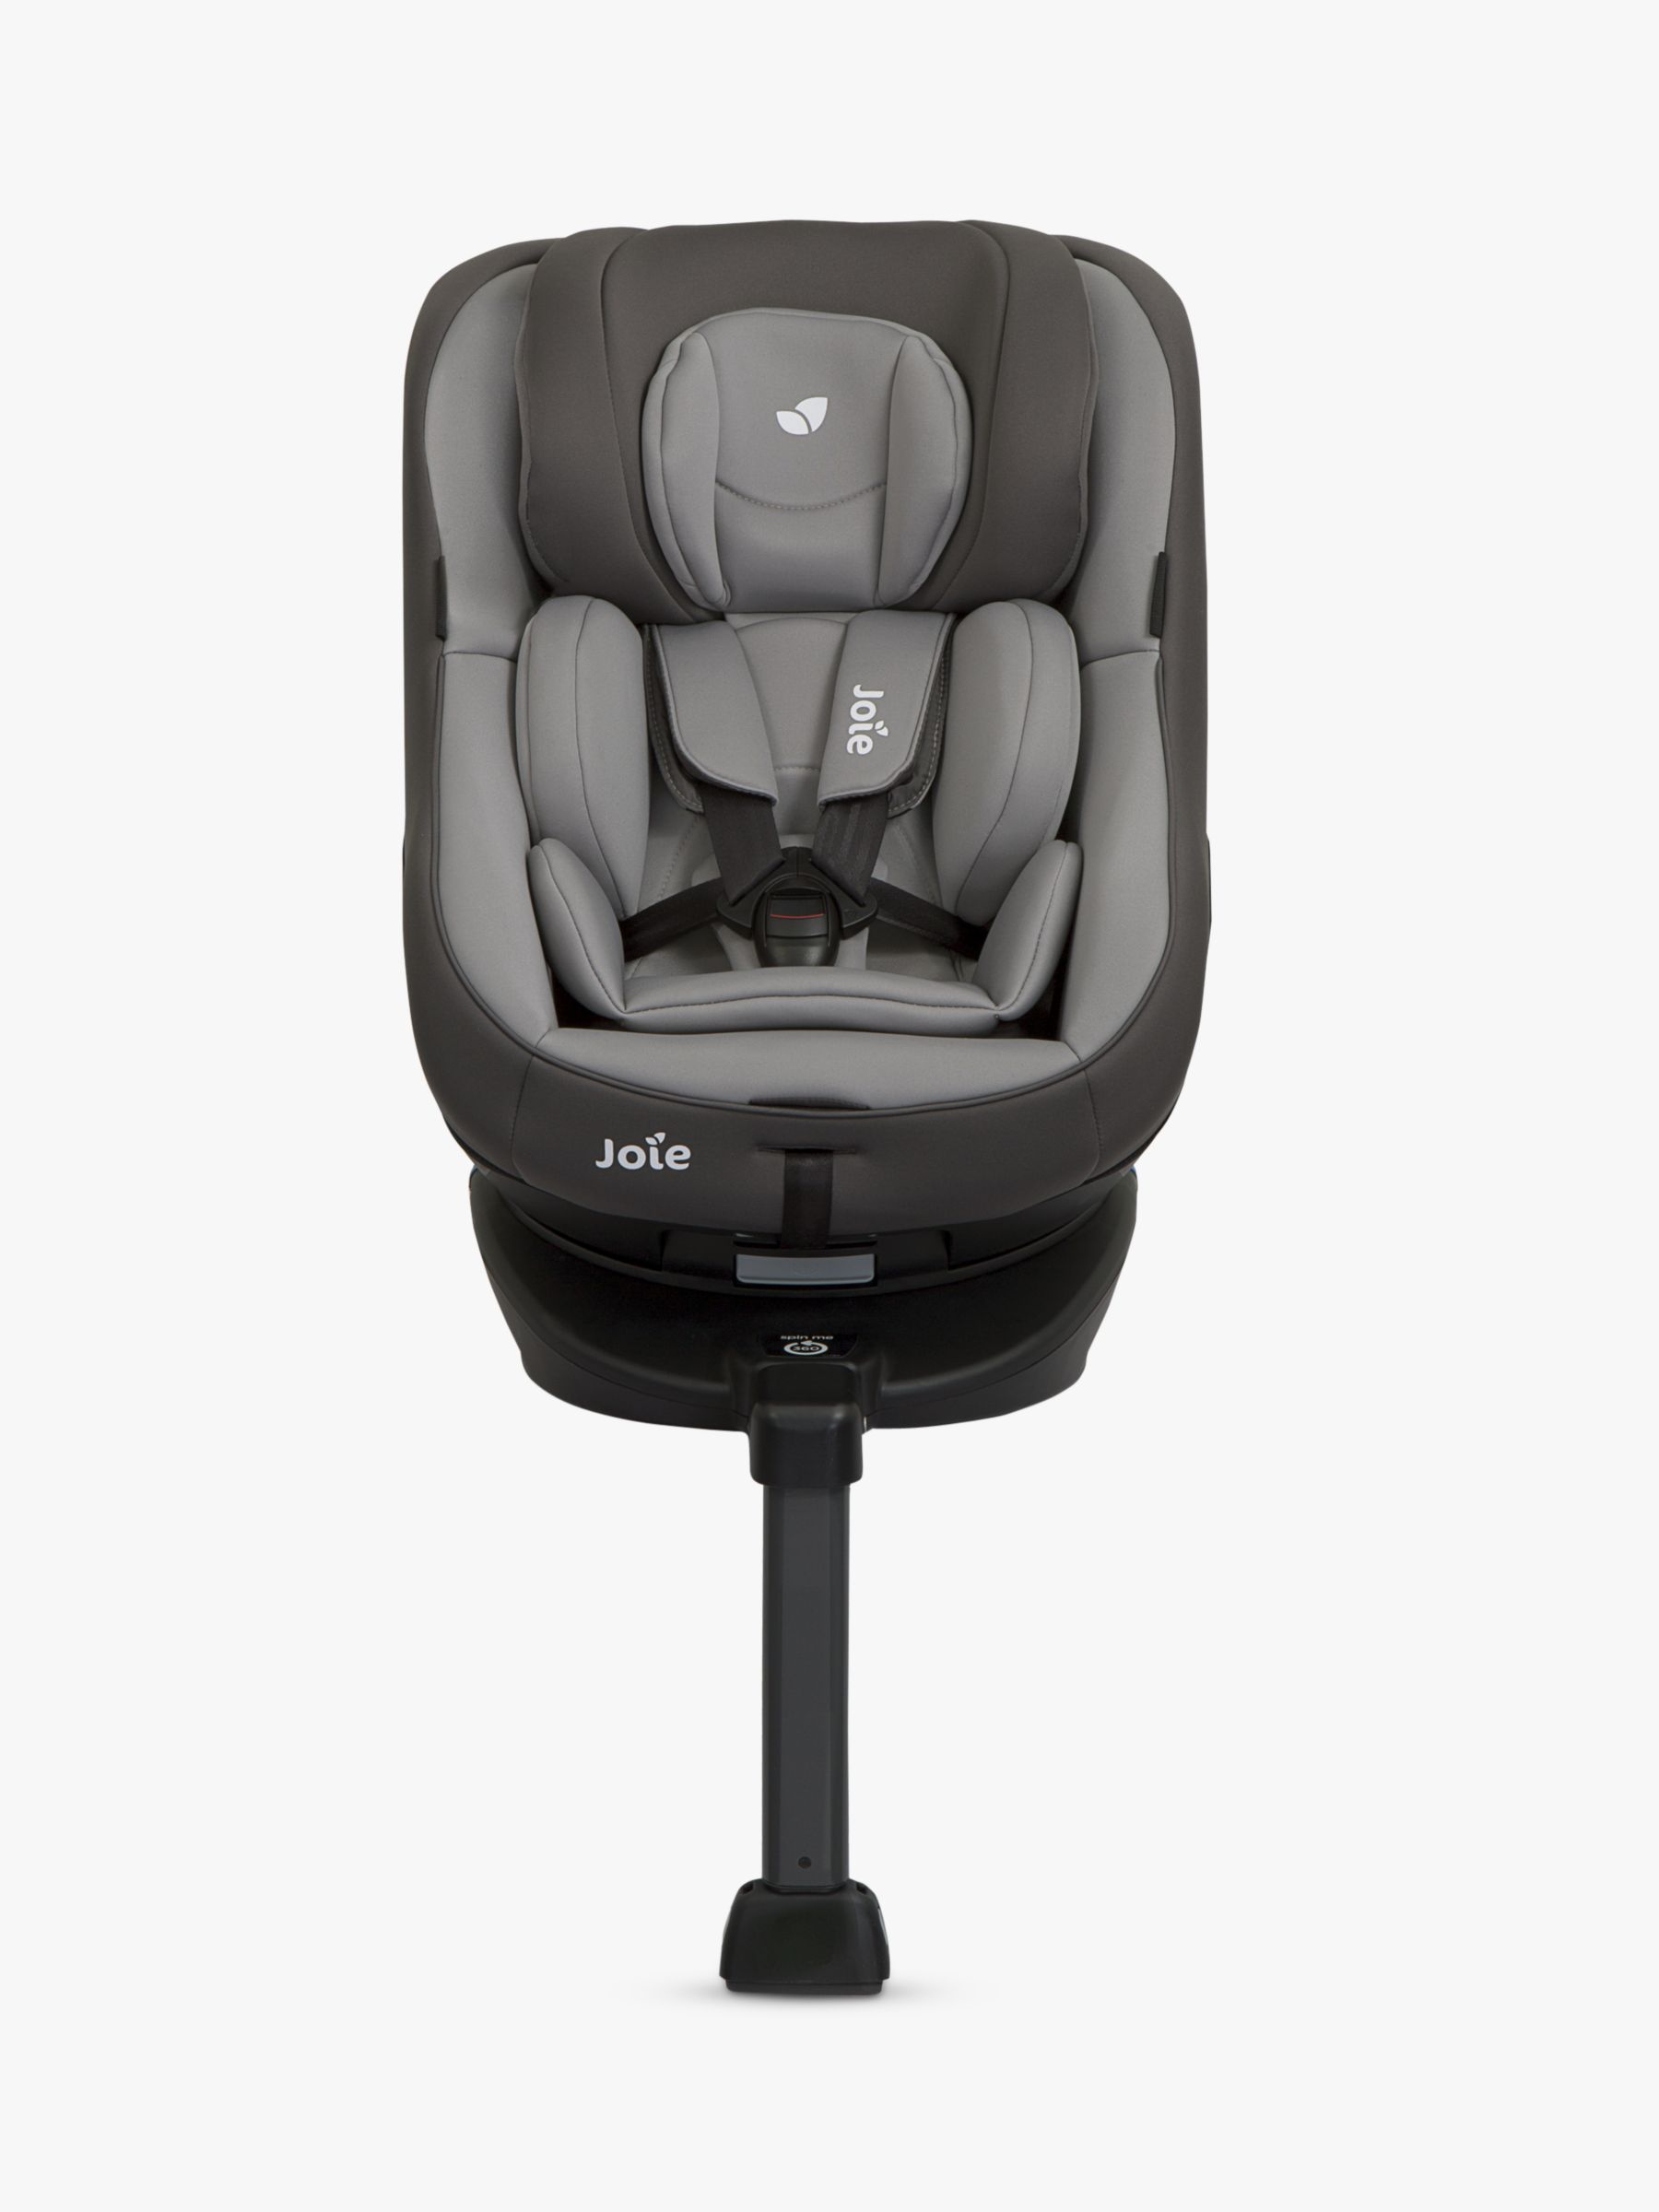 Joie Baby Spin 360 Group 0+/1 Car Seat, Dark Pewter Joie